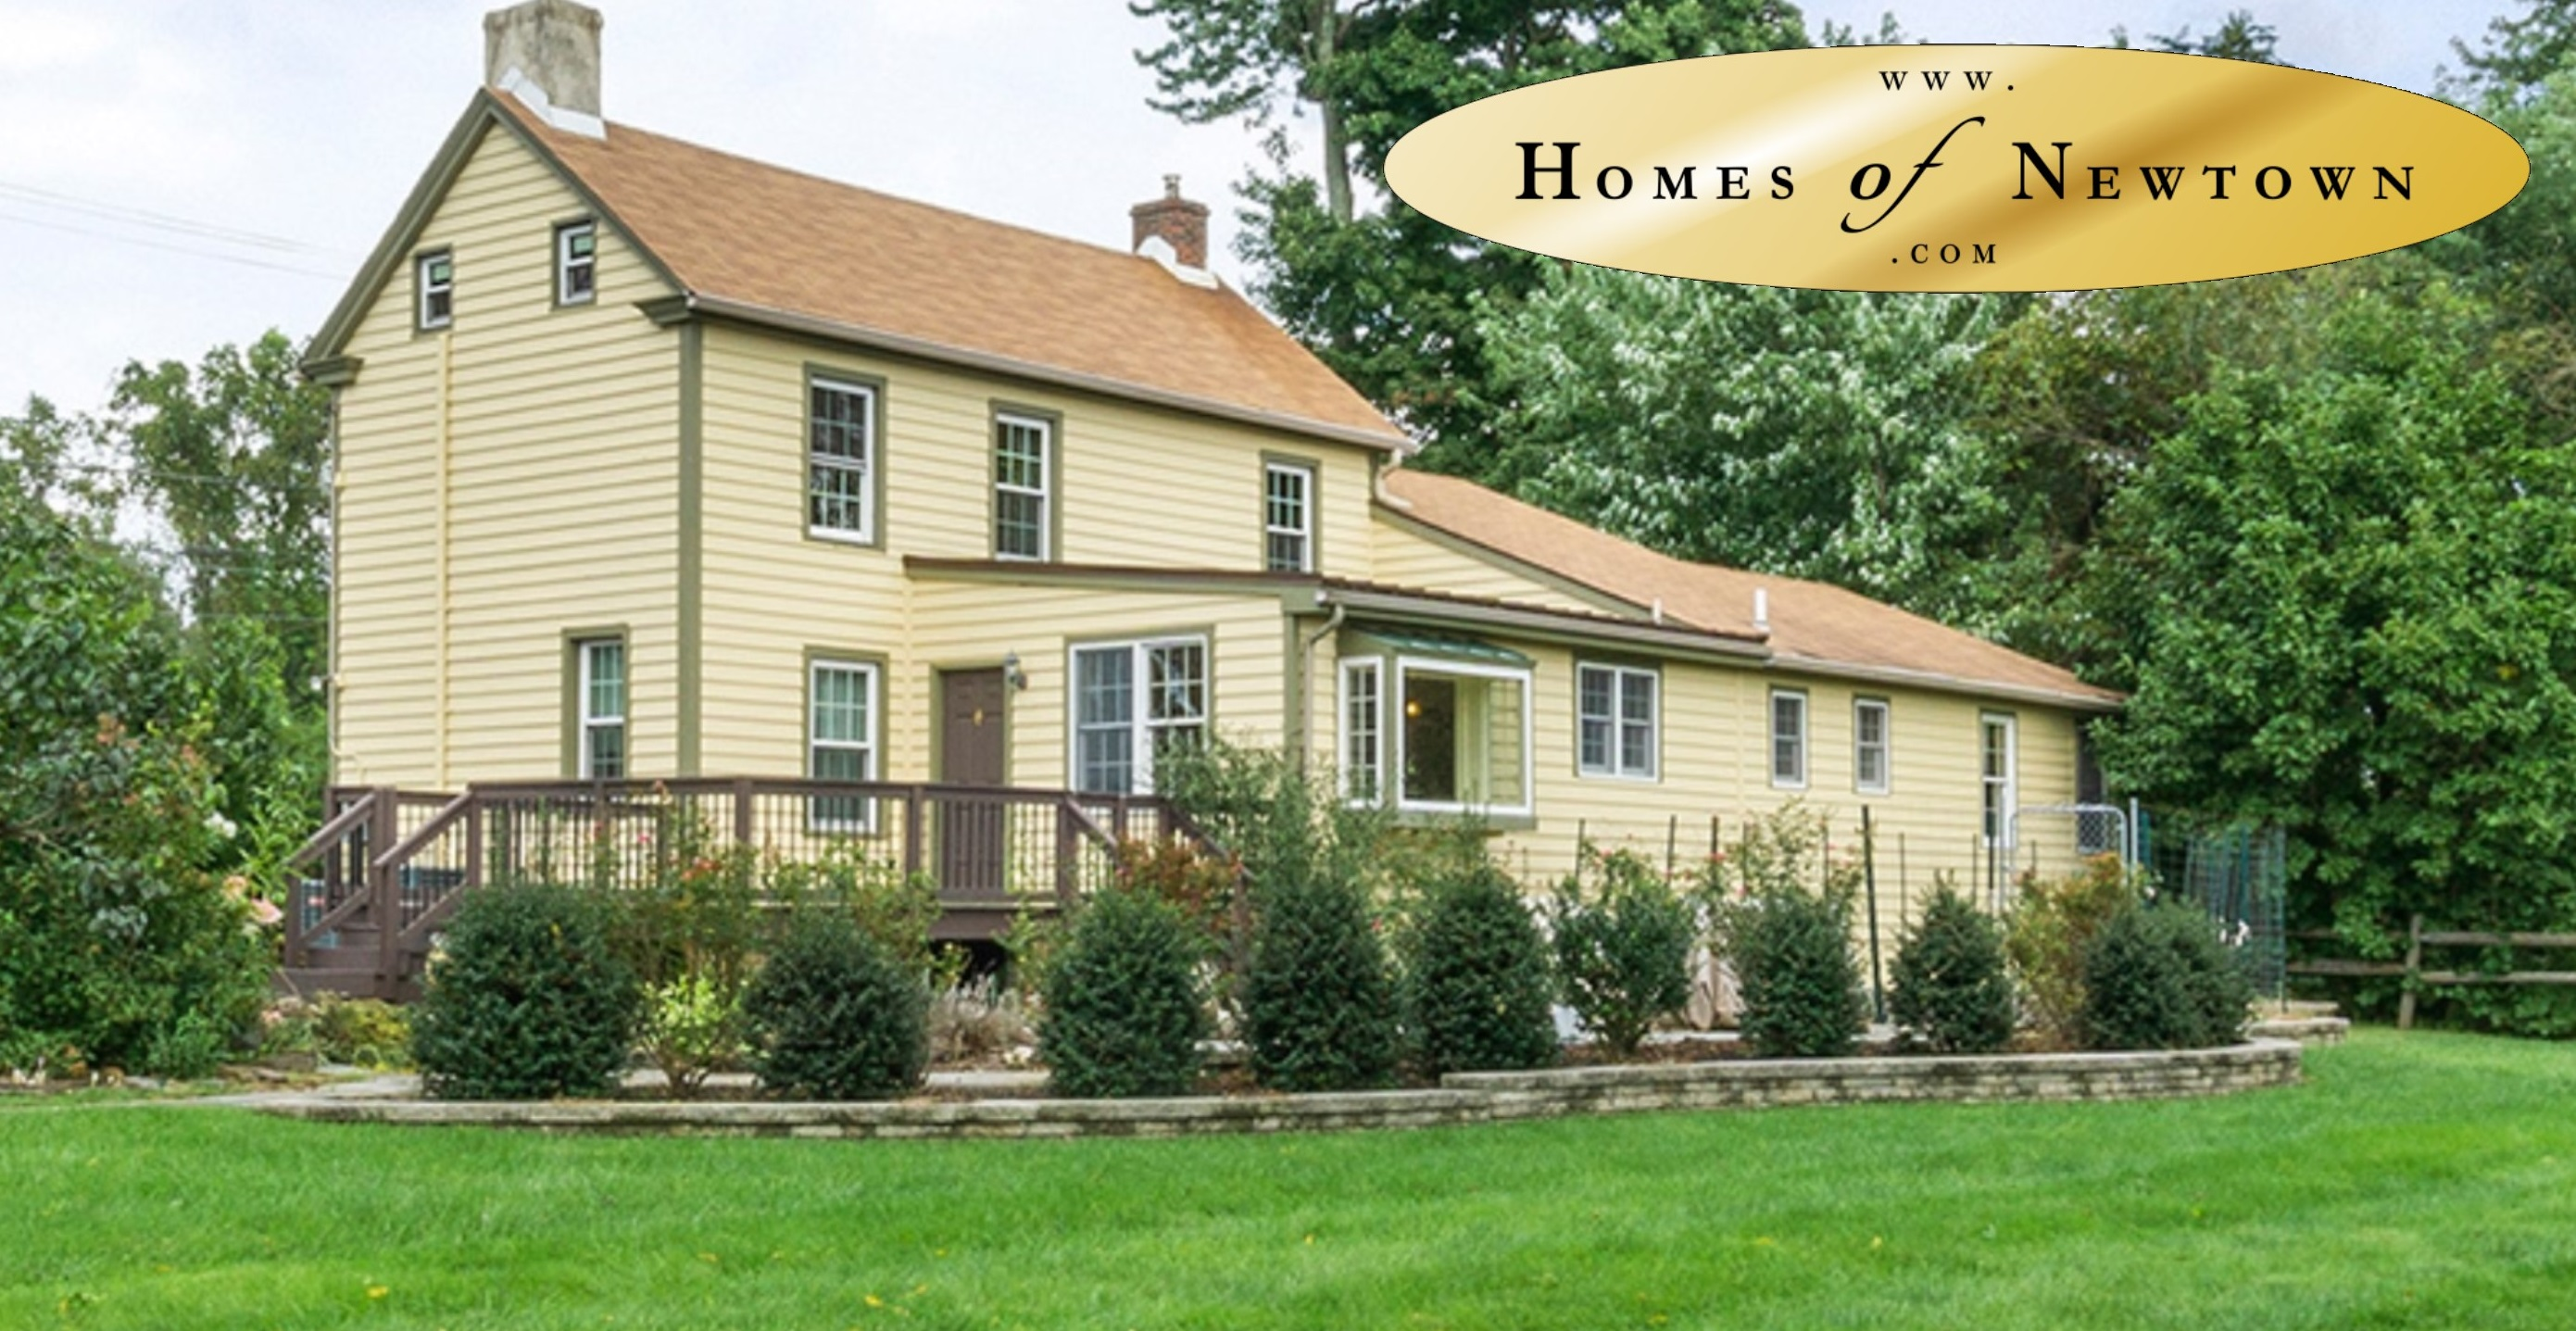 Homes Of Newtown | Homes for Sale Newtwon PA | Homes for Sale Bucks County | Newtown Realtor | #NewtownRealtor